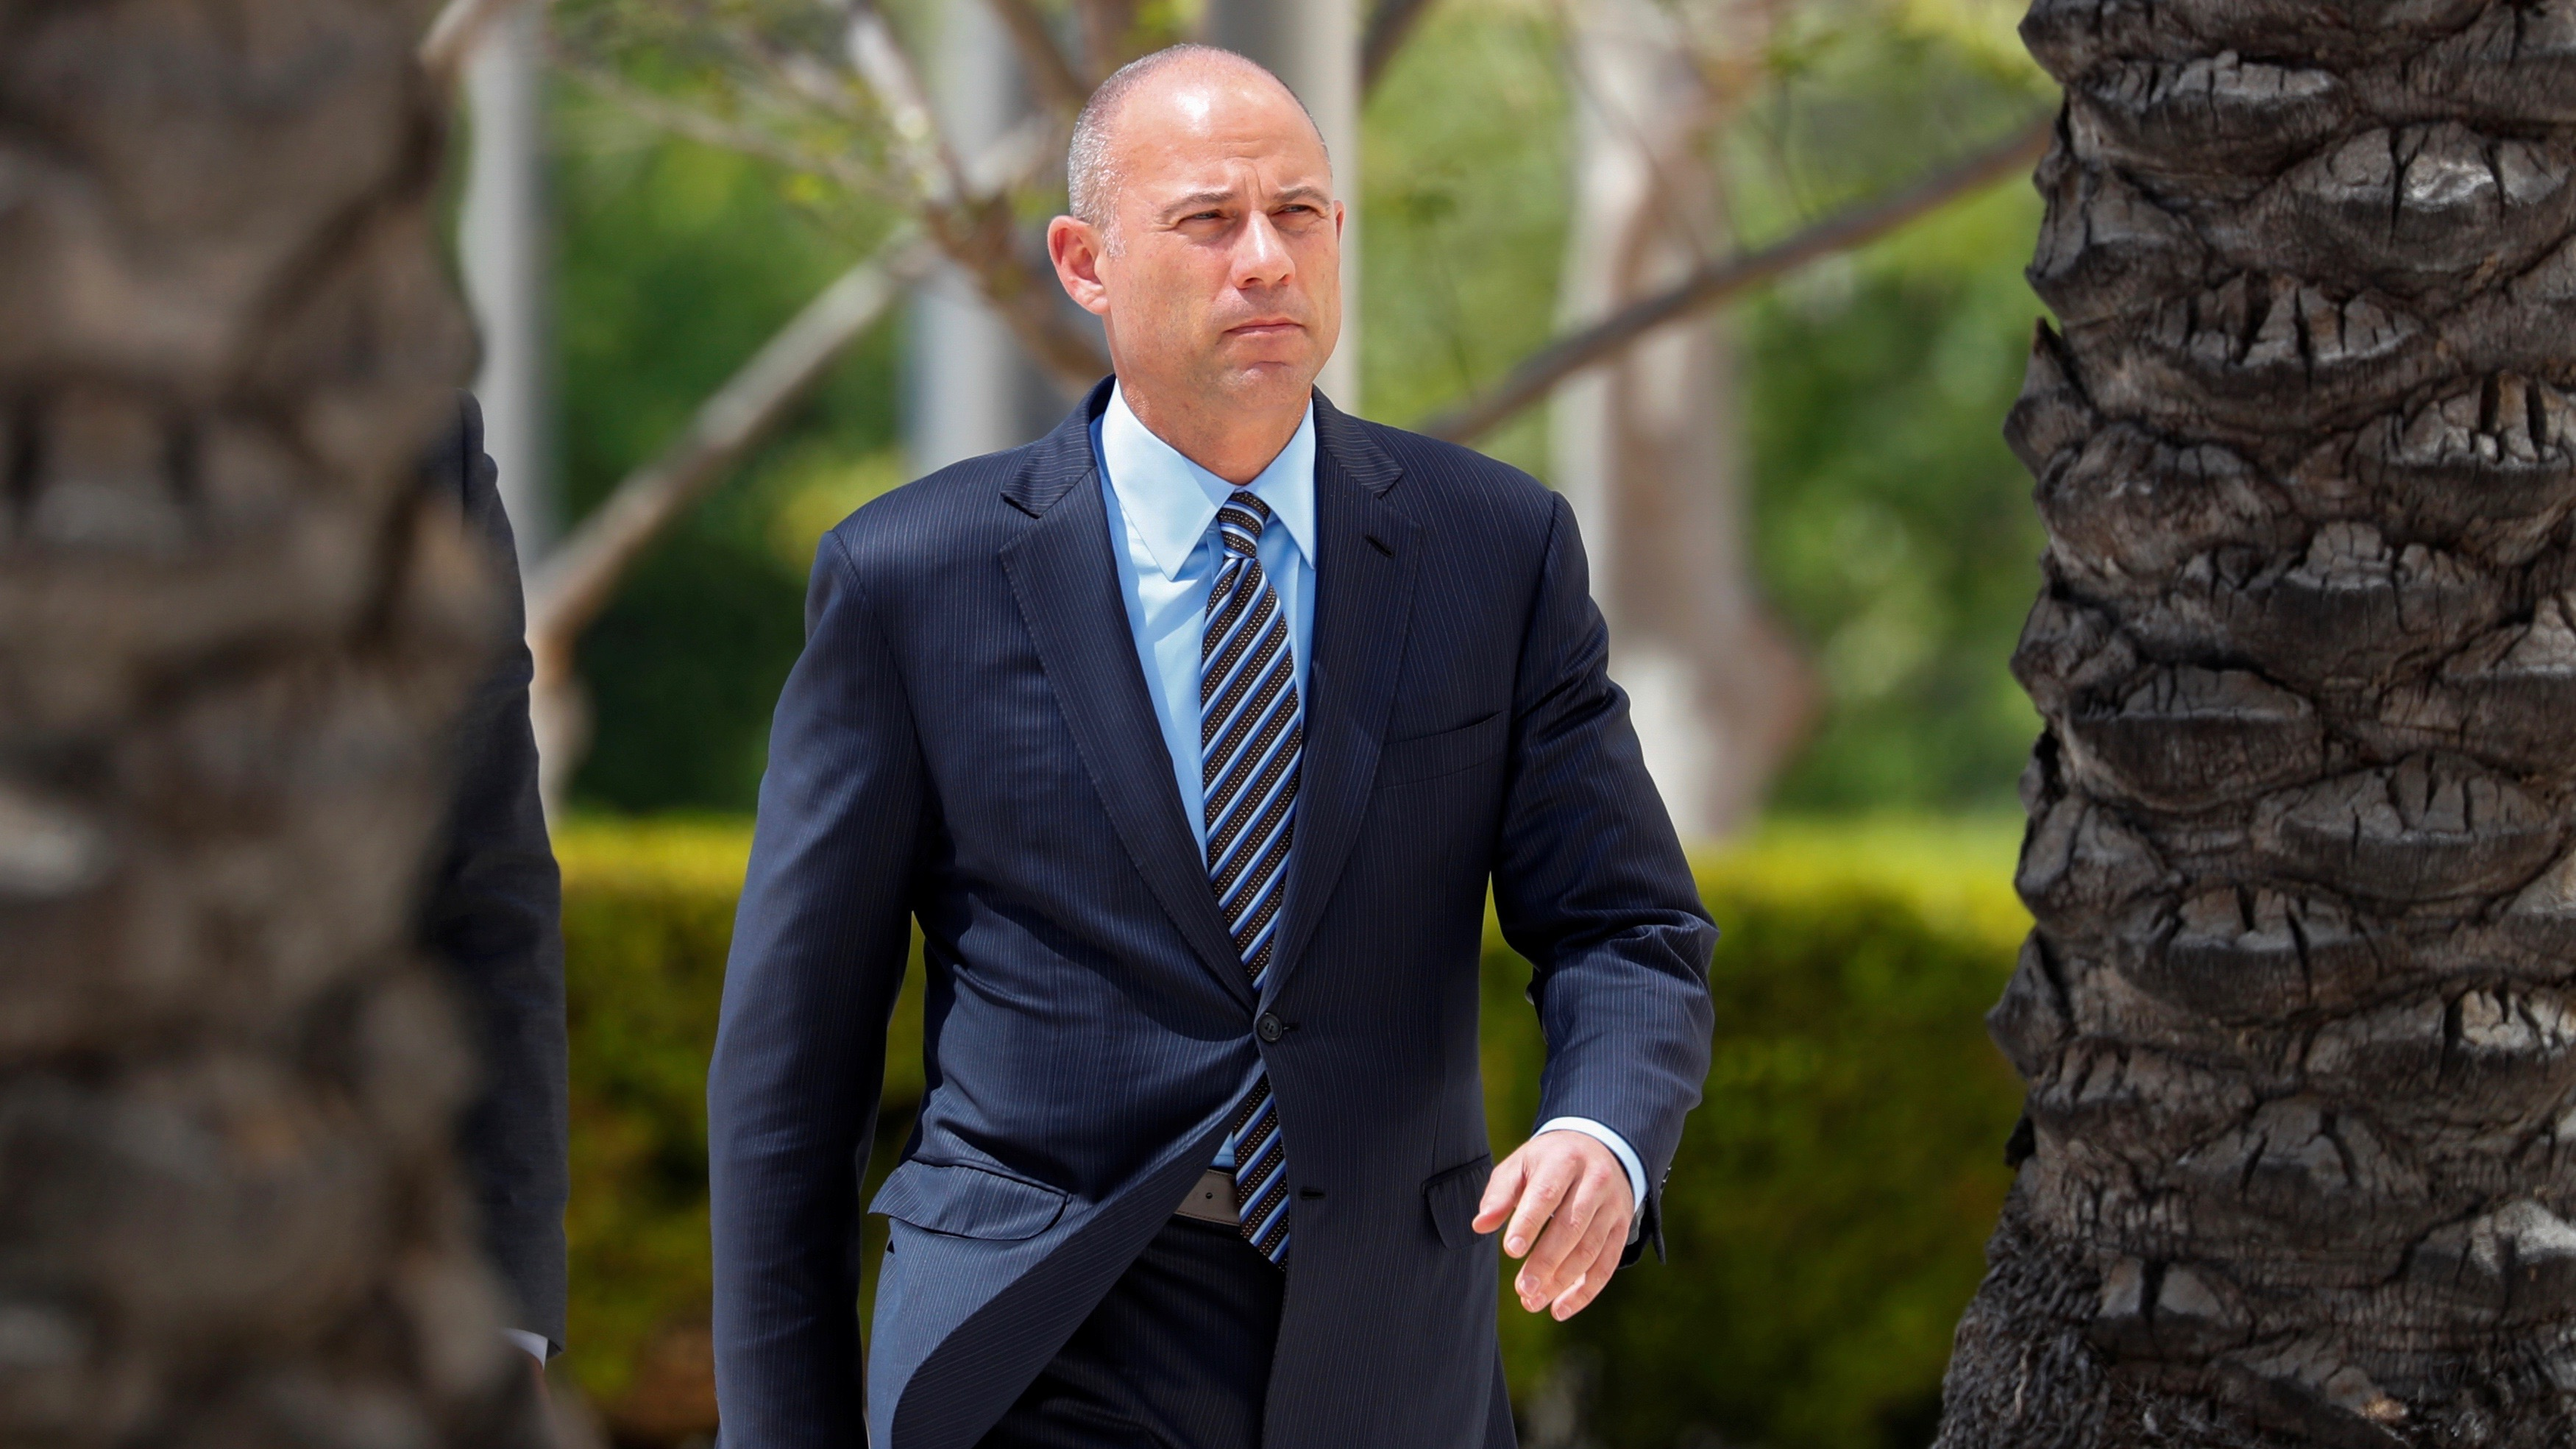 Things are looking grim for Michael Avenatti.